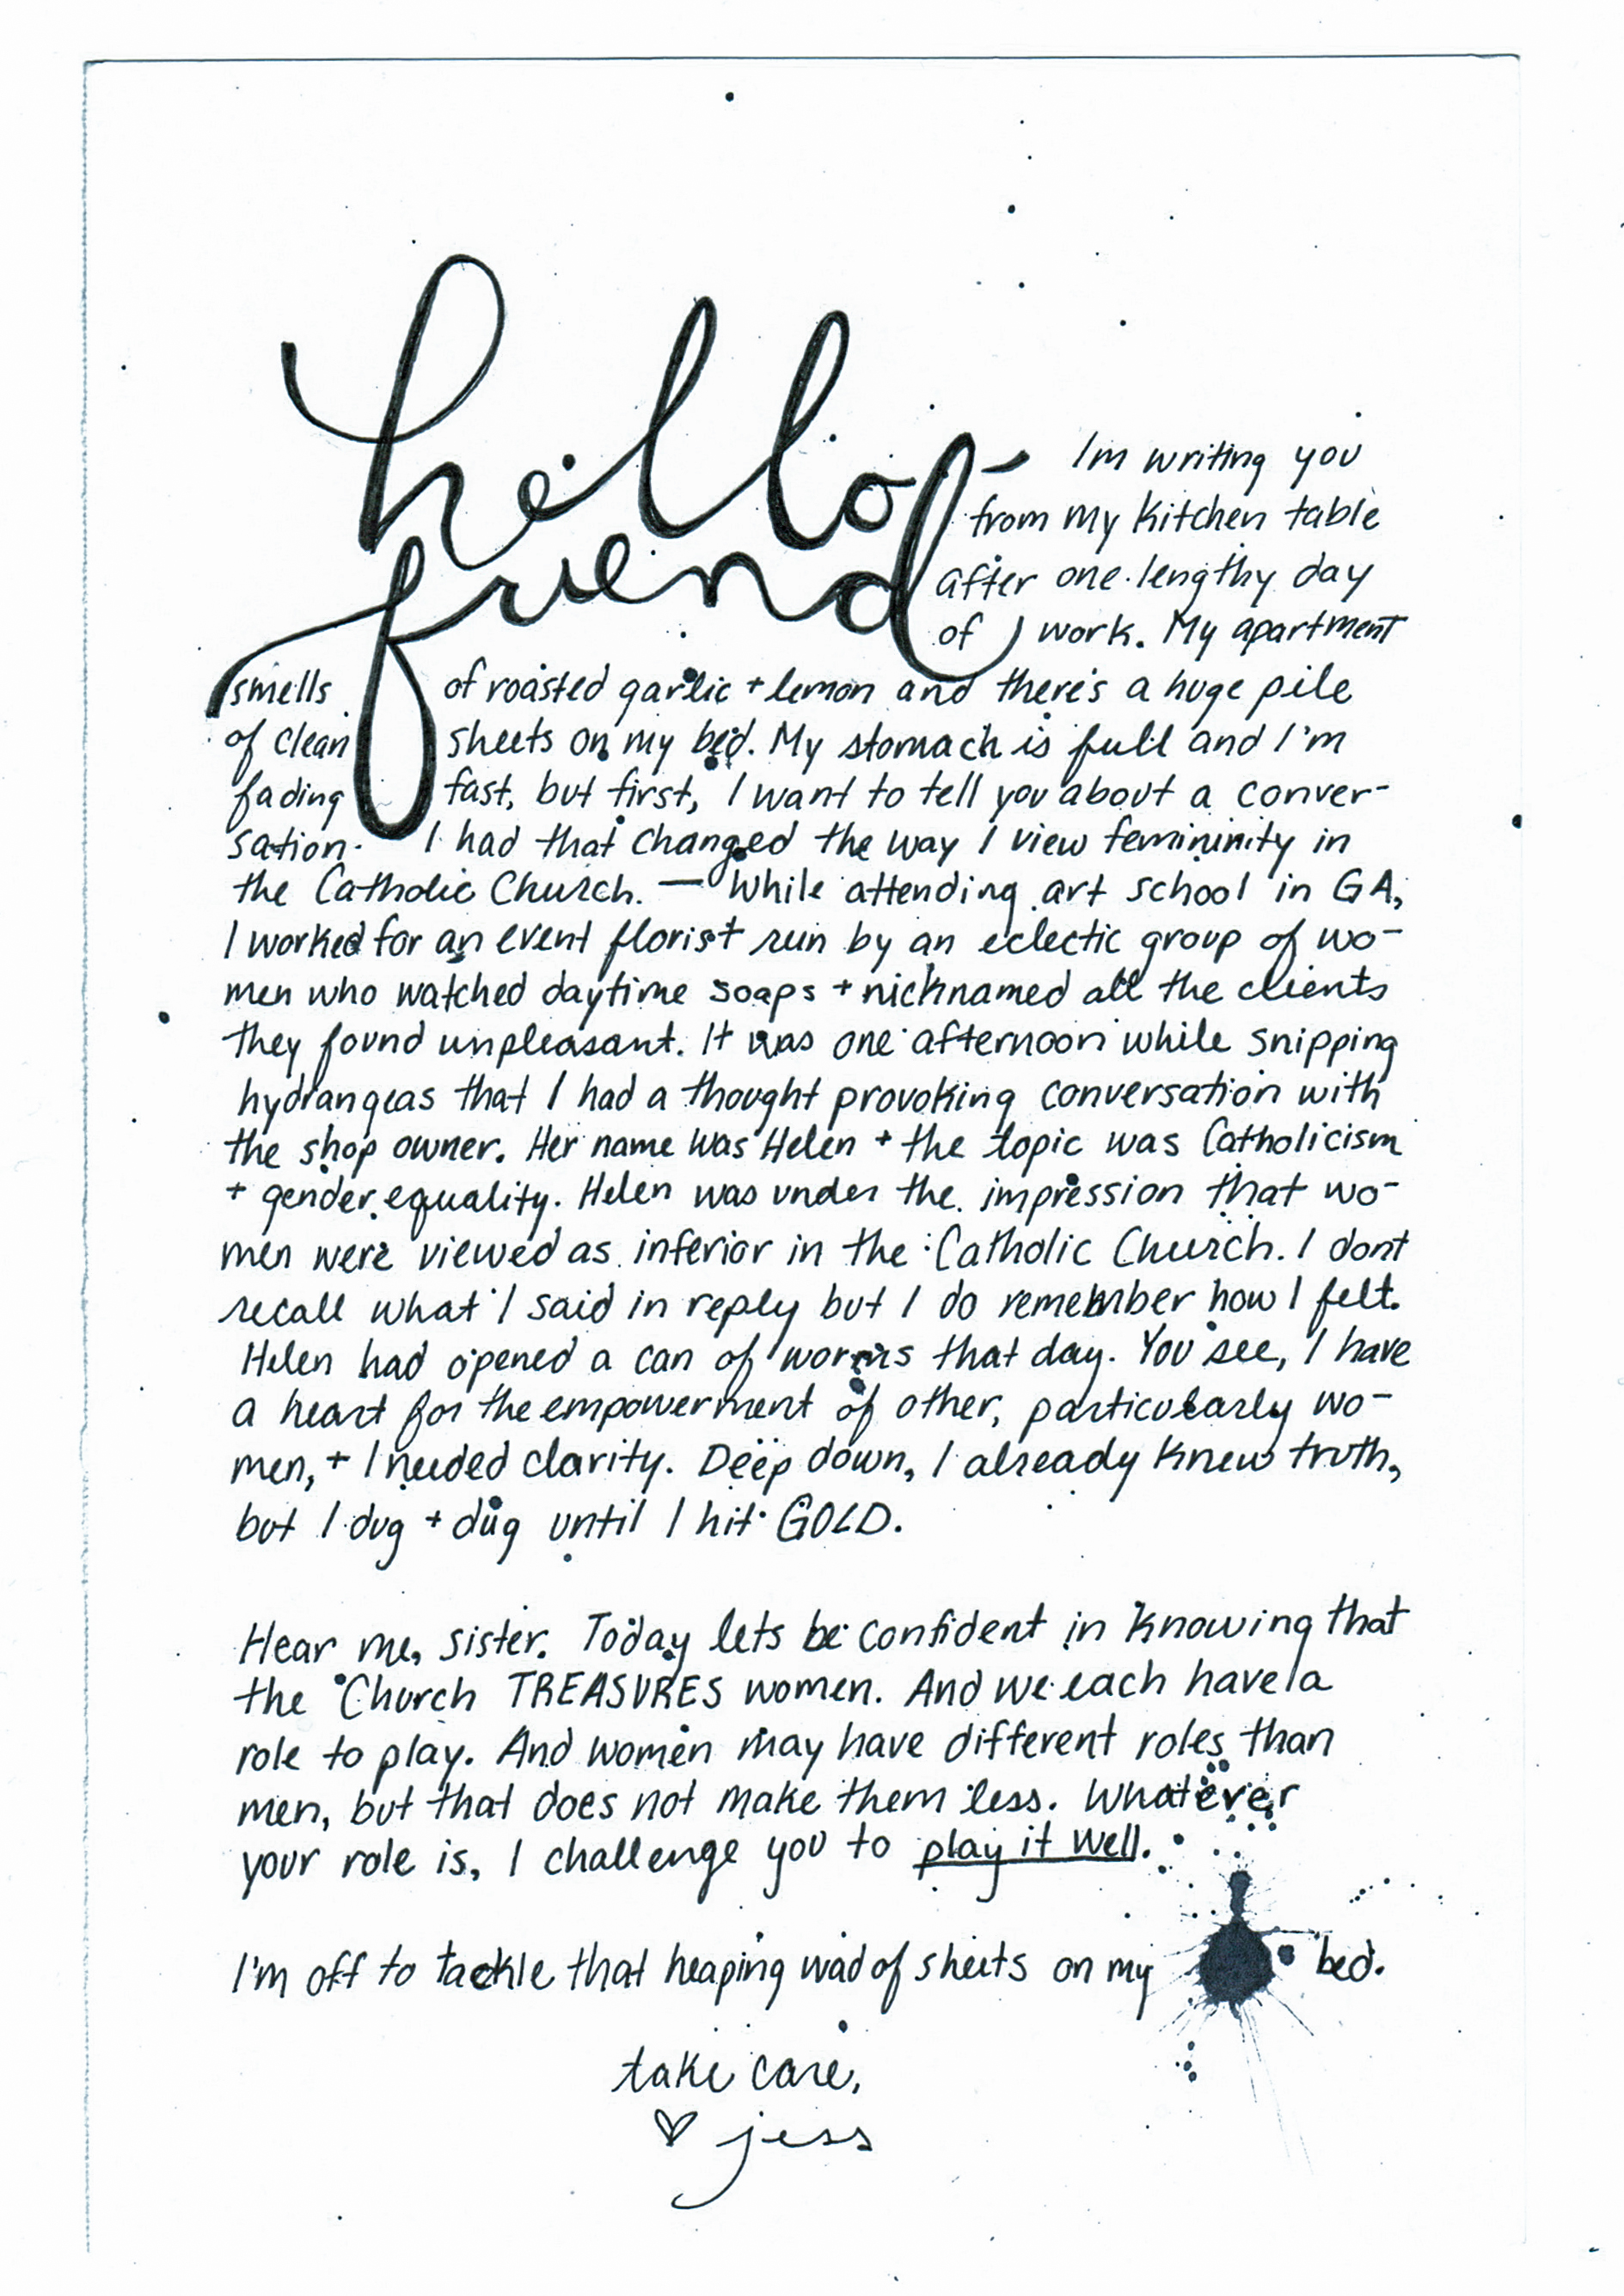 The-Catholic-Woman-Jessica-Amsberry-Letter